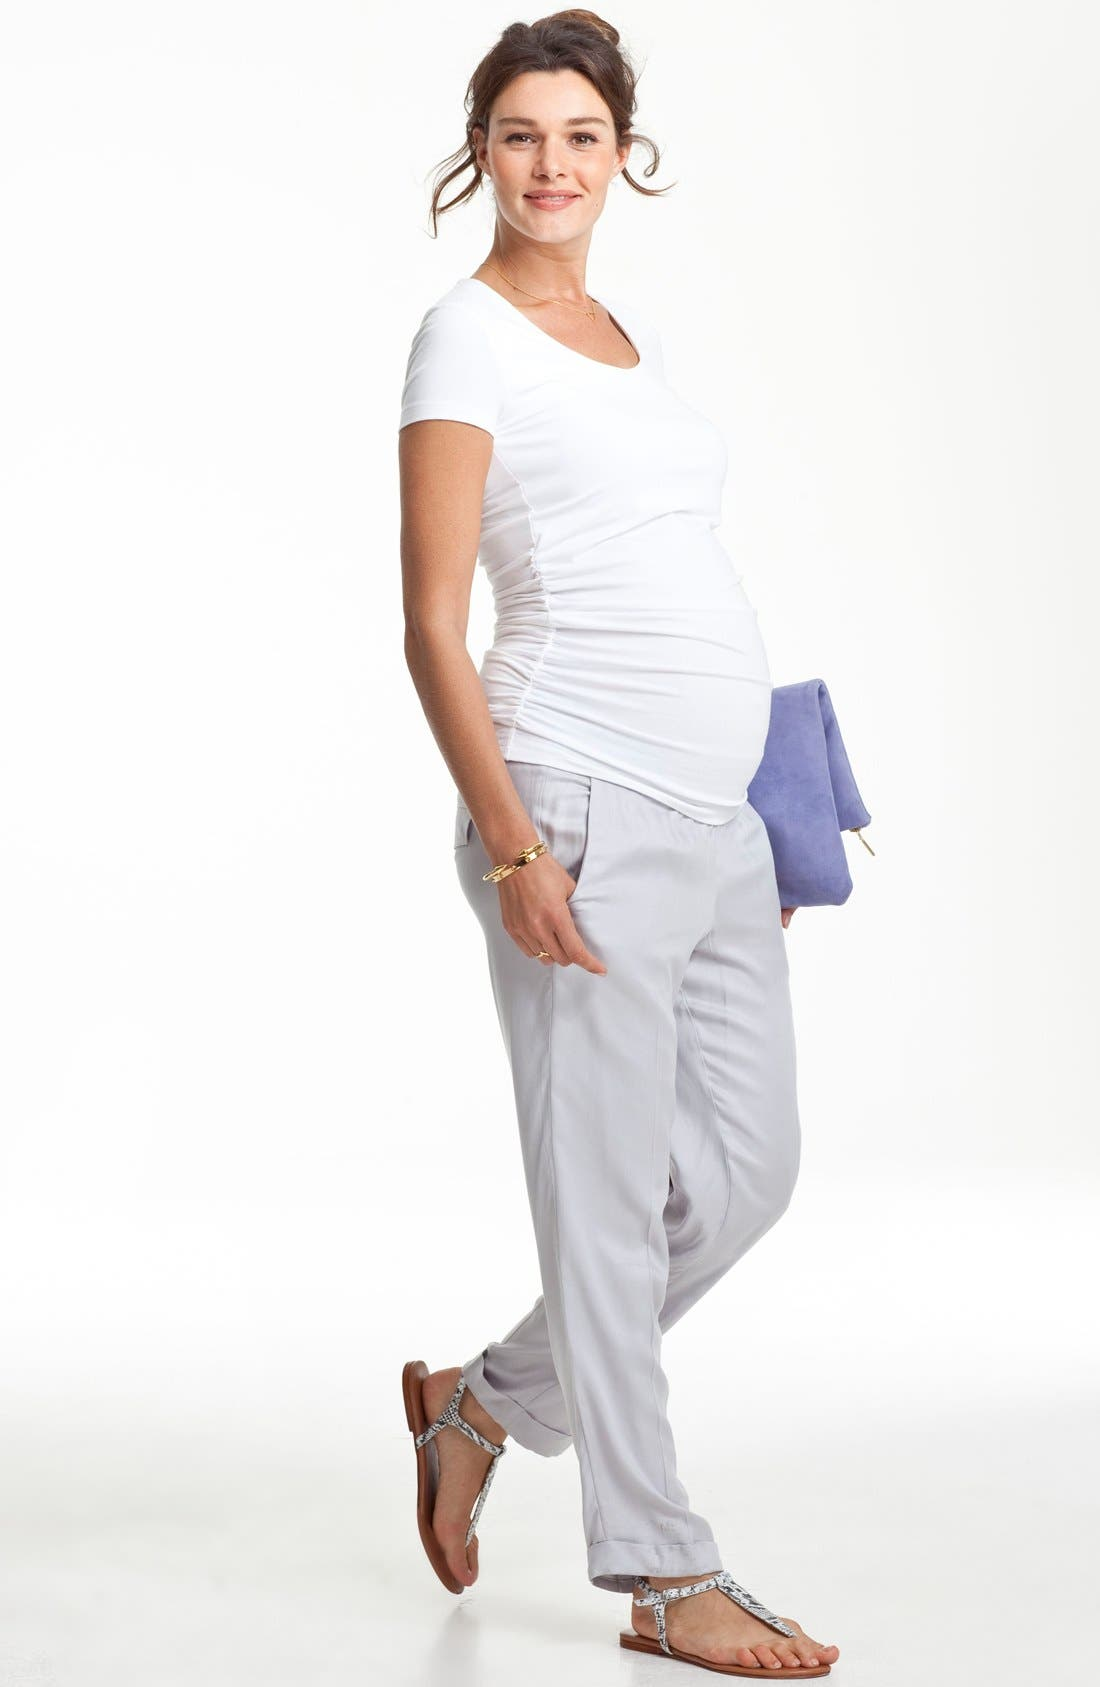 Scoop Neck Maternity Tee,                             Alternate thumbnail 4, color,                             PURE WHITE